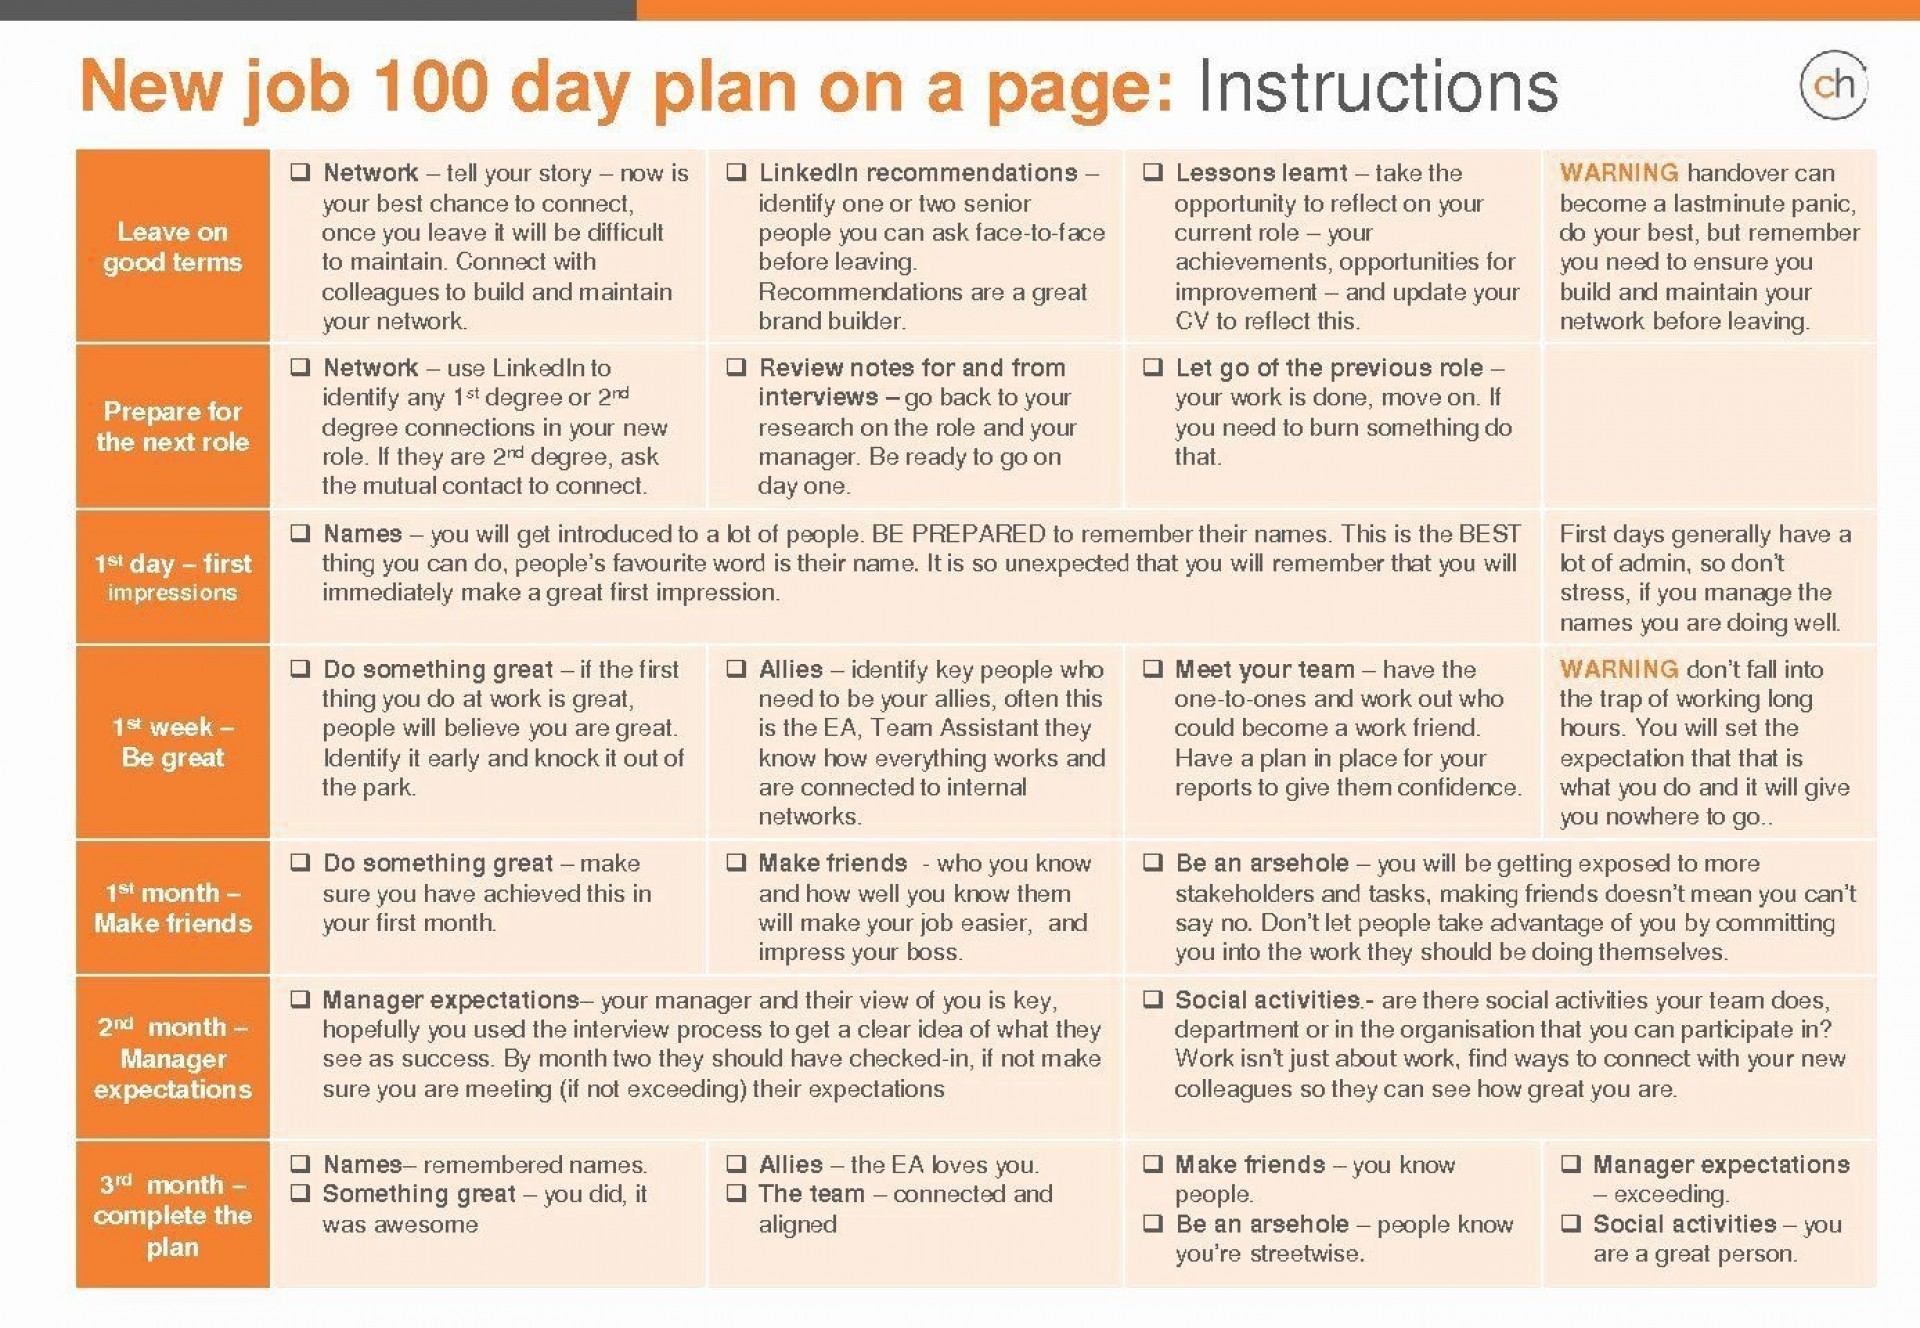 006 Awesome 100 Day Planning Template Photo  Plan Powerpoint Free New Job Example1920